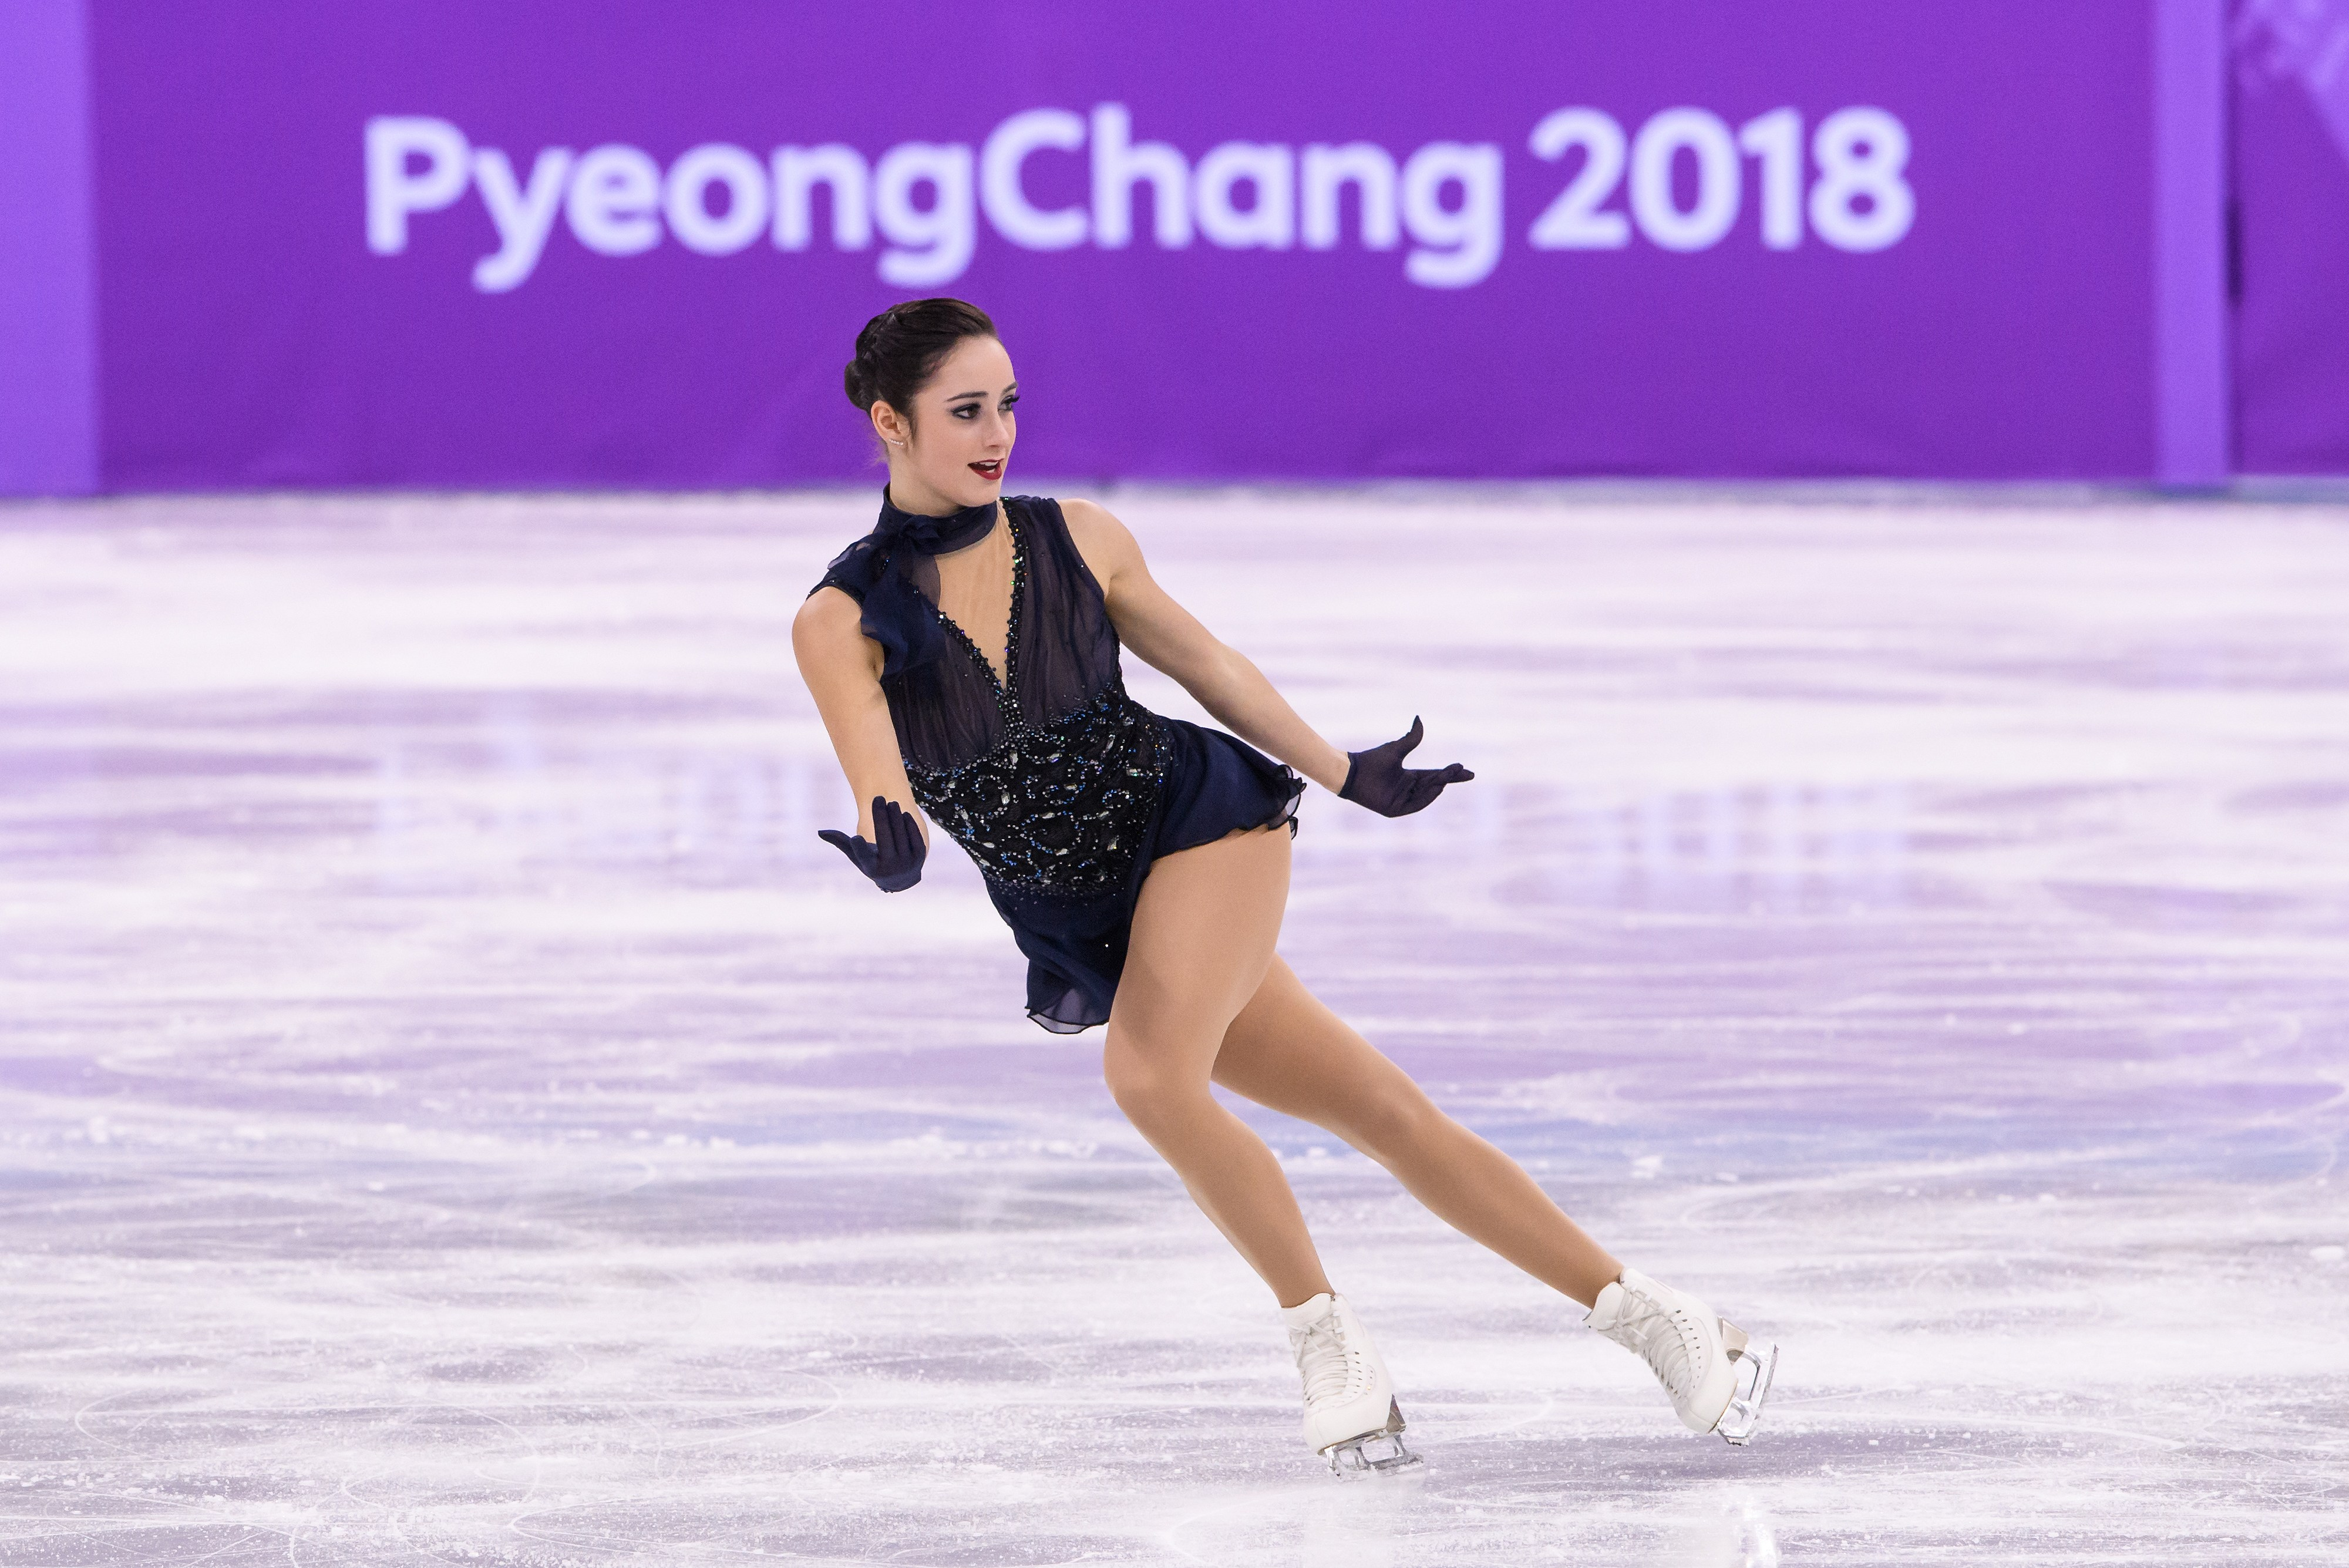 Team Canada Kaetlyn Osmond PyeongChang 2018 team event